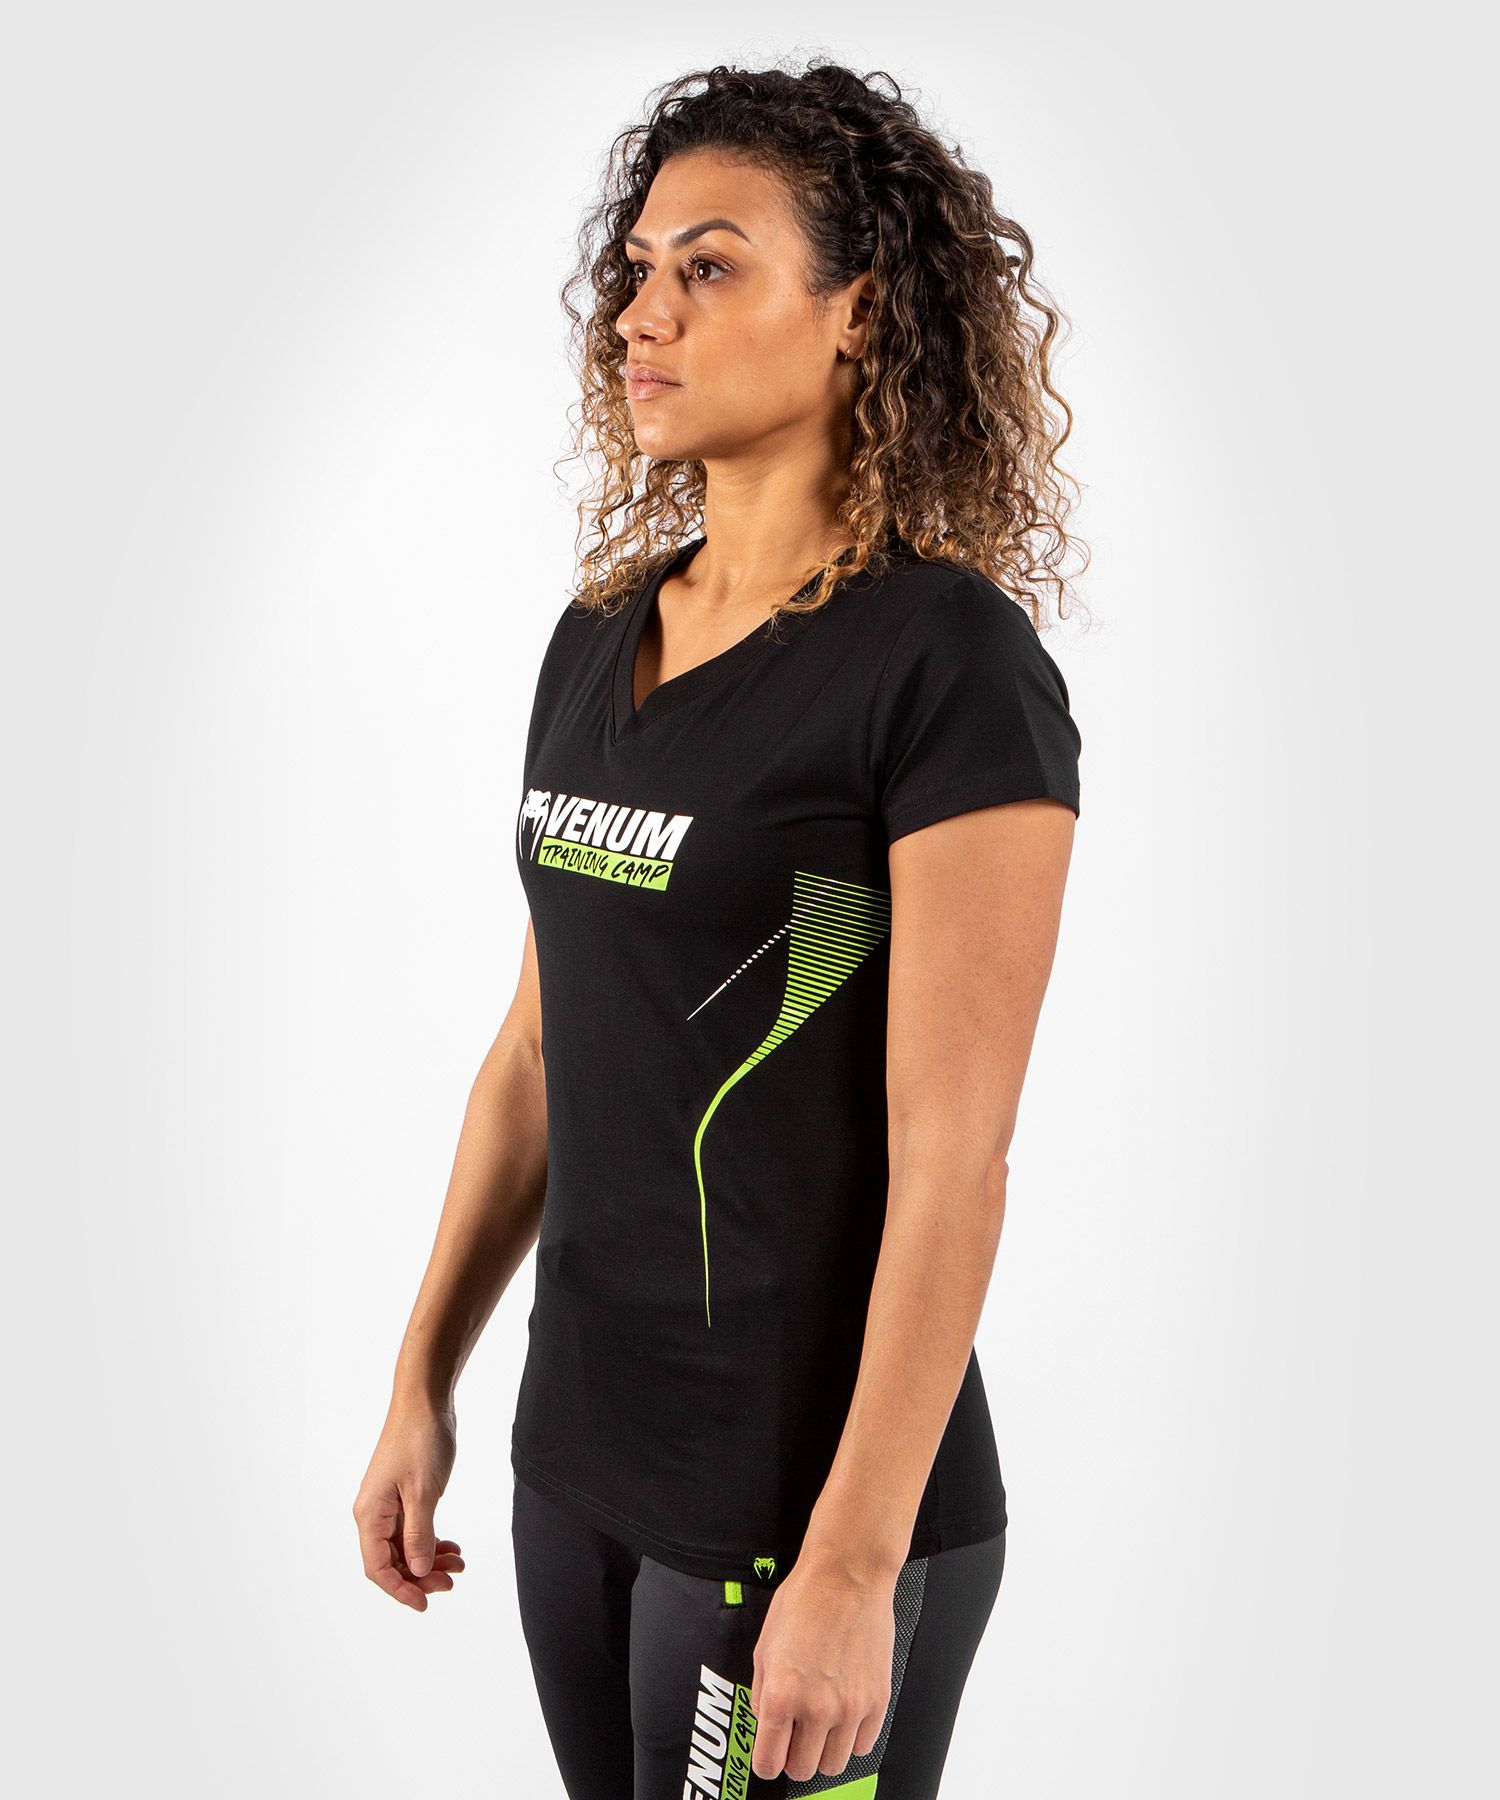 Venum Training Camp 3.0 T-shirt - Dames